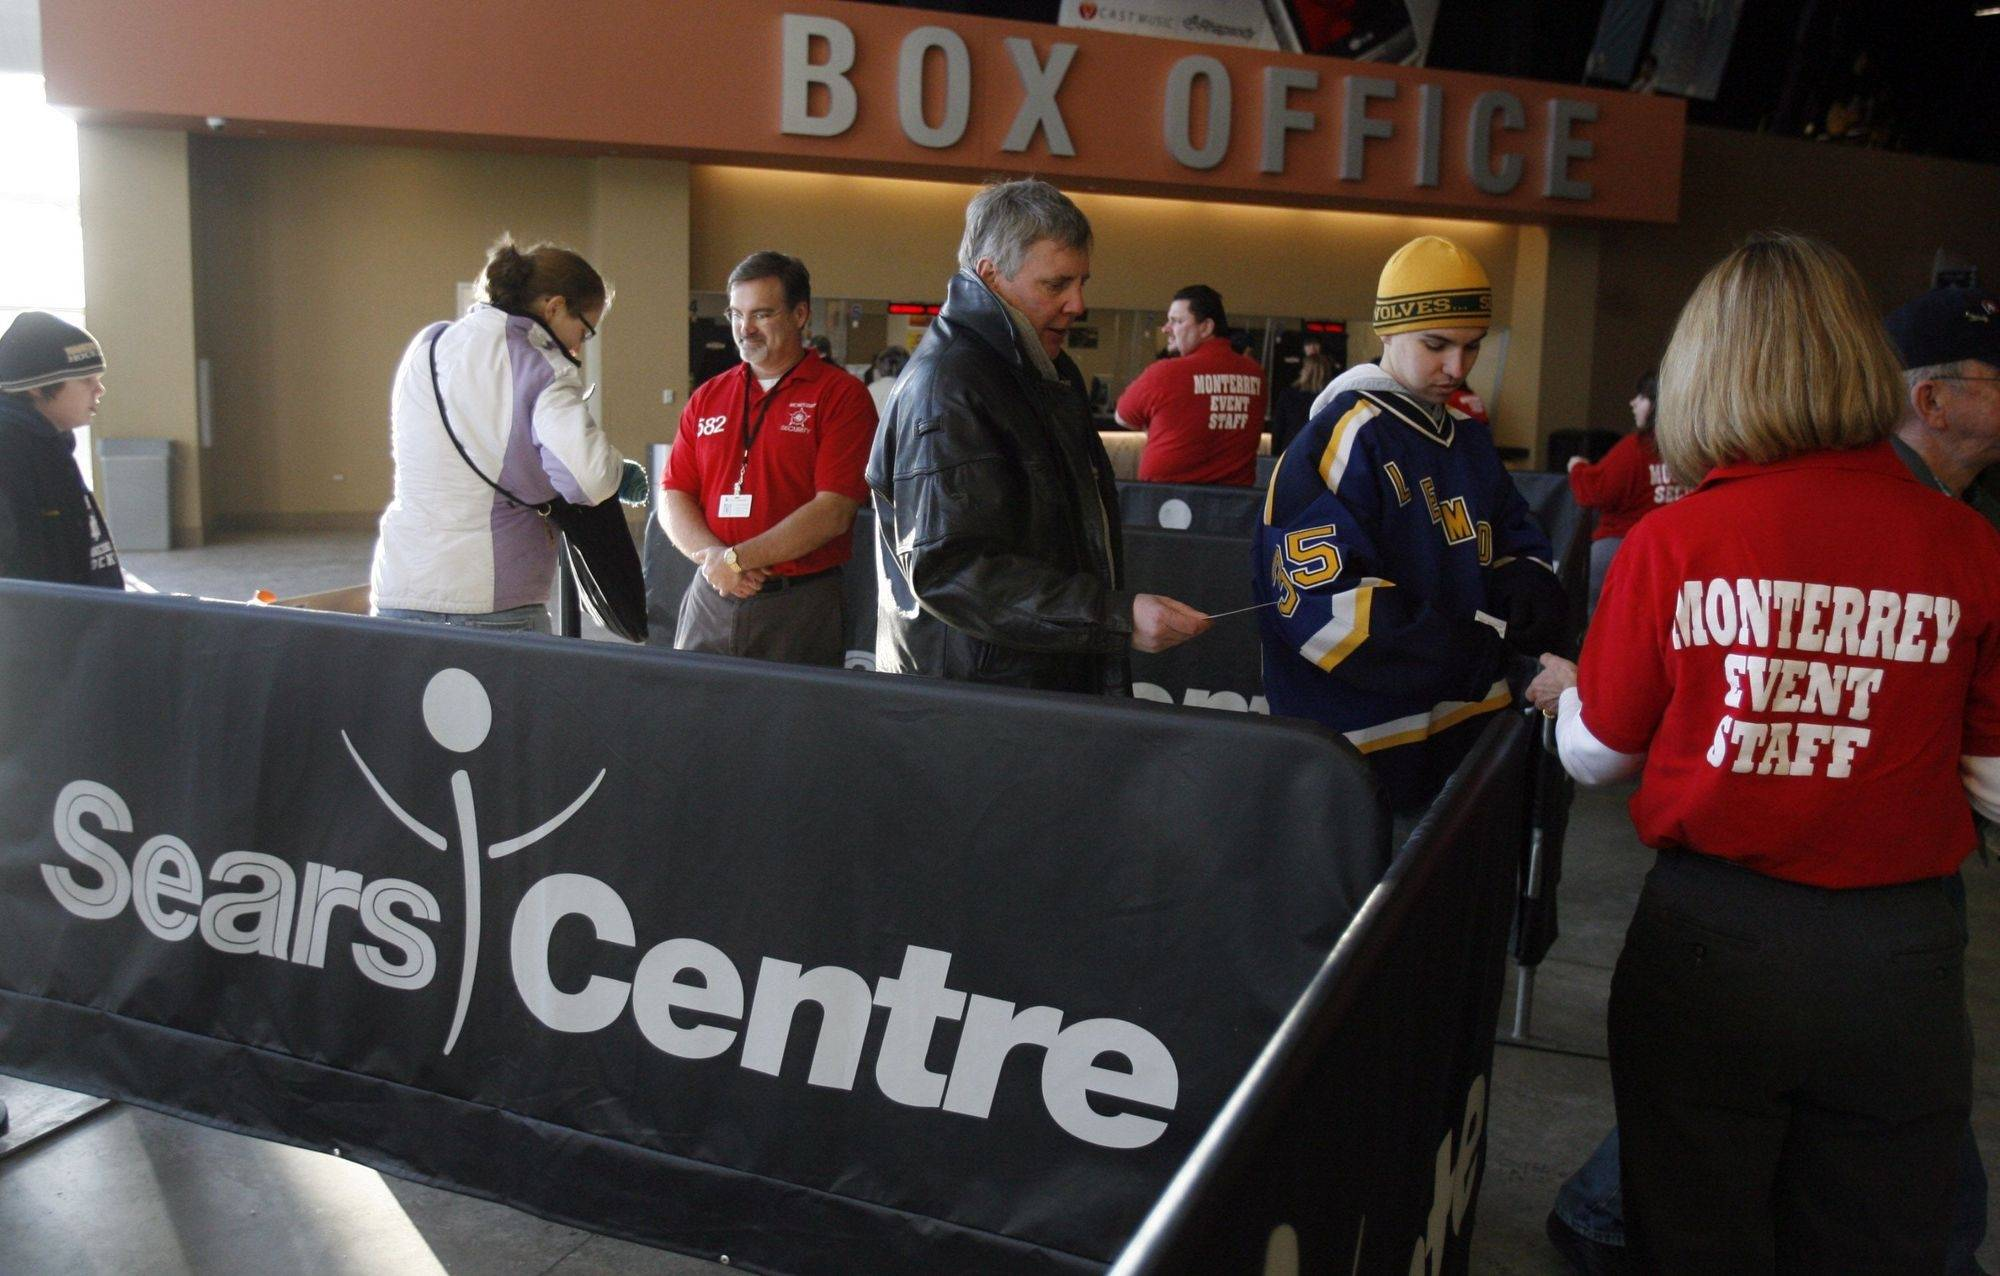 So far, so good for new Sears arena management